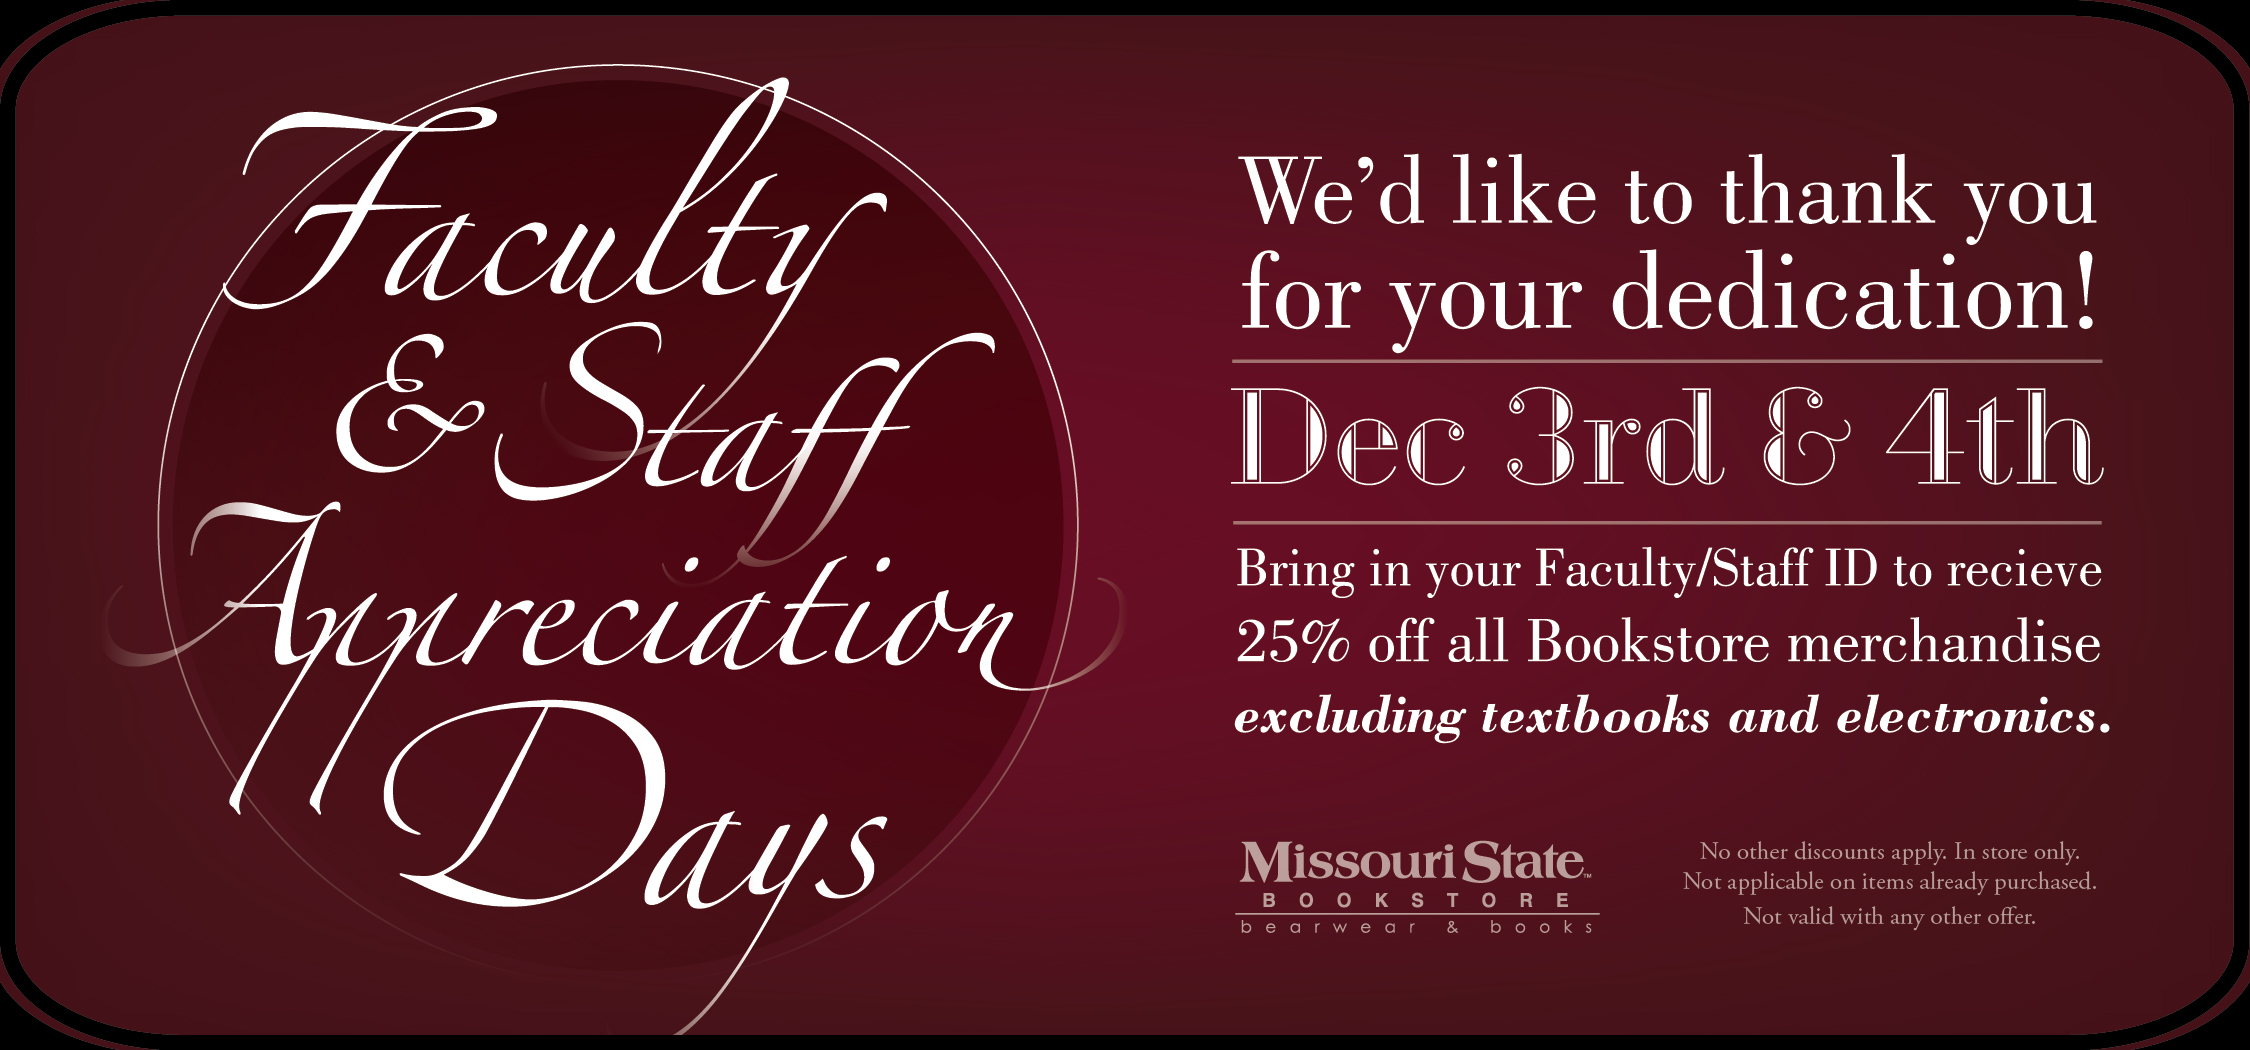 Faculty/Staff Appreciation Sale at the Missouri State Bookstore